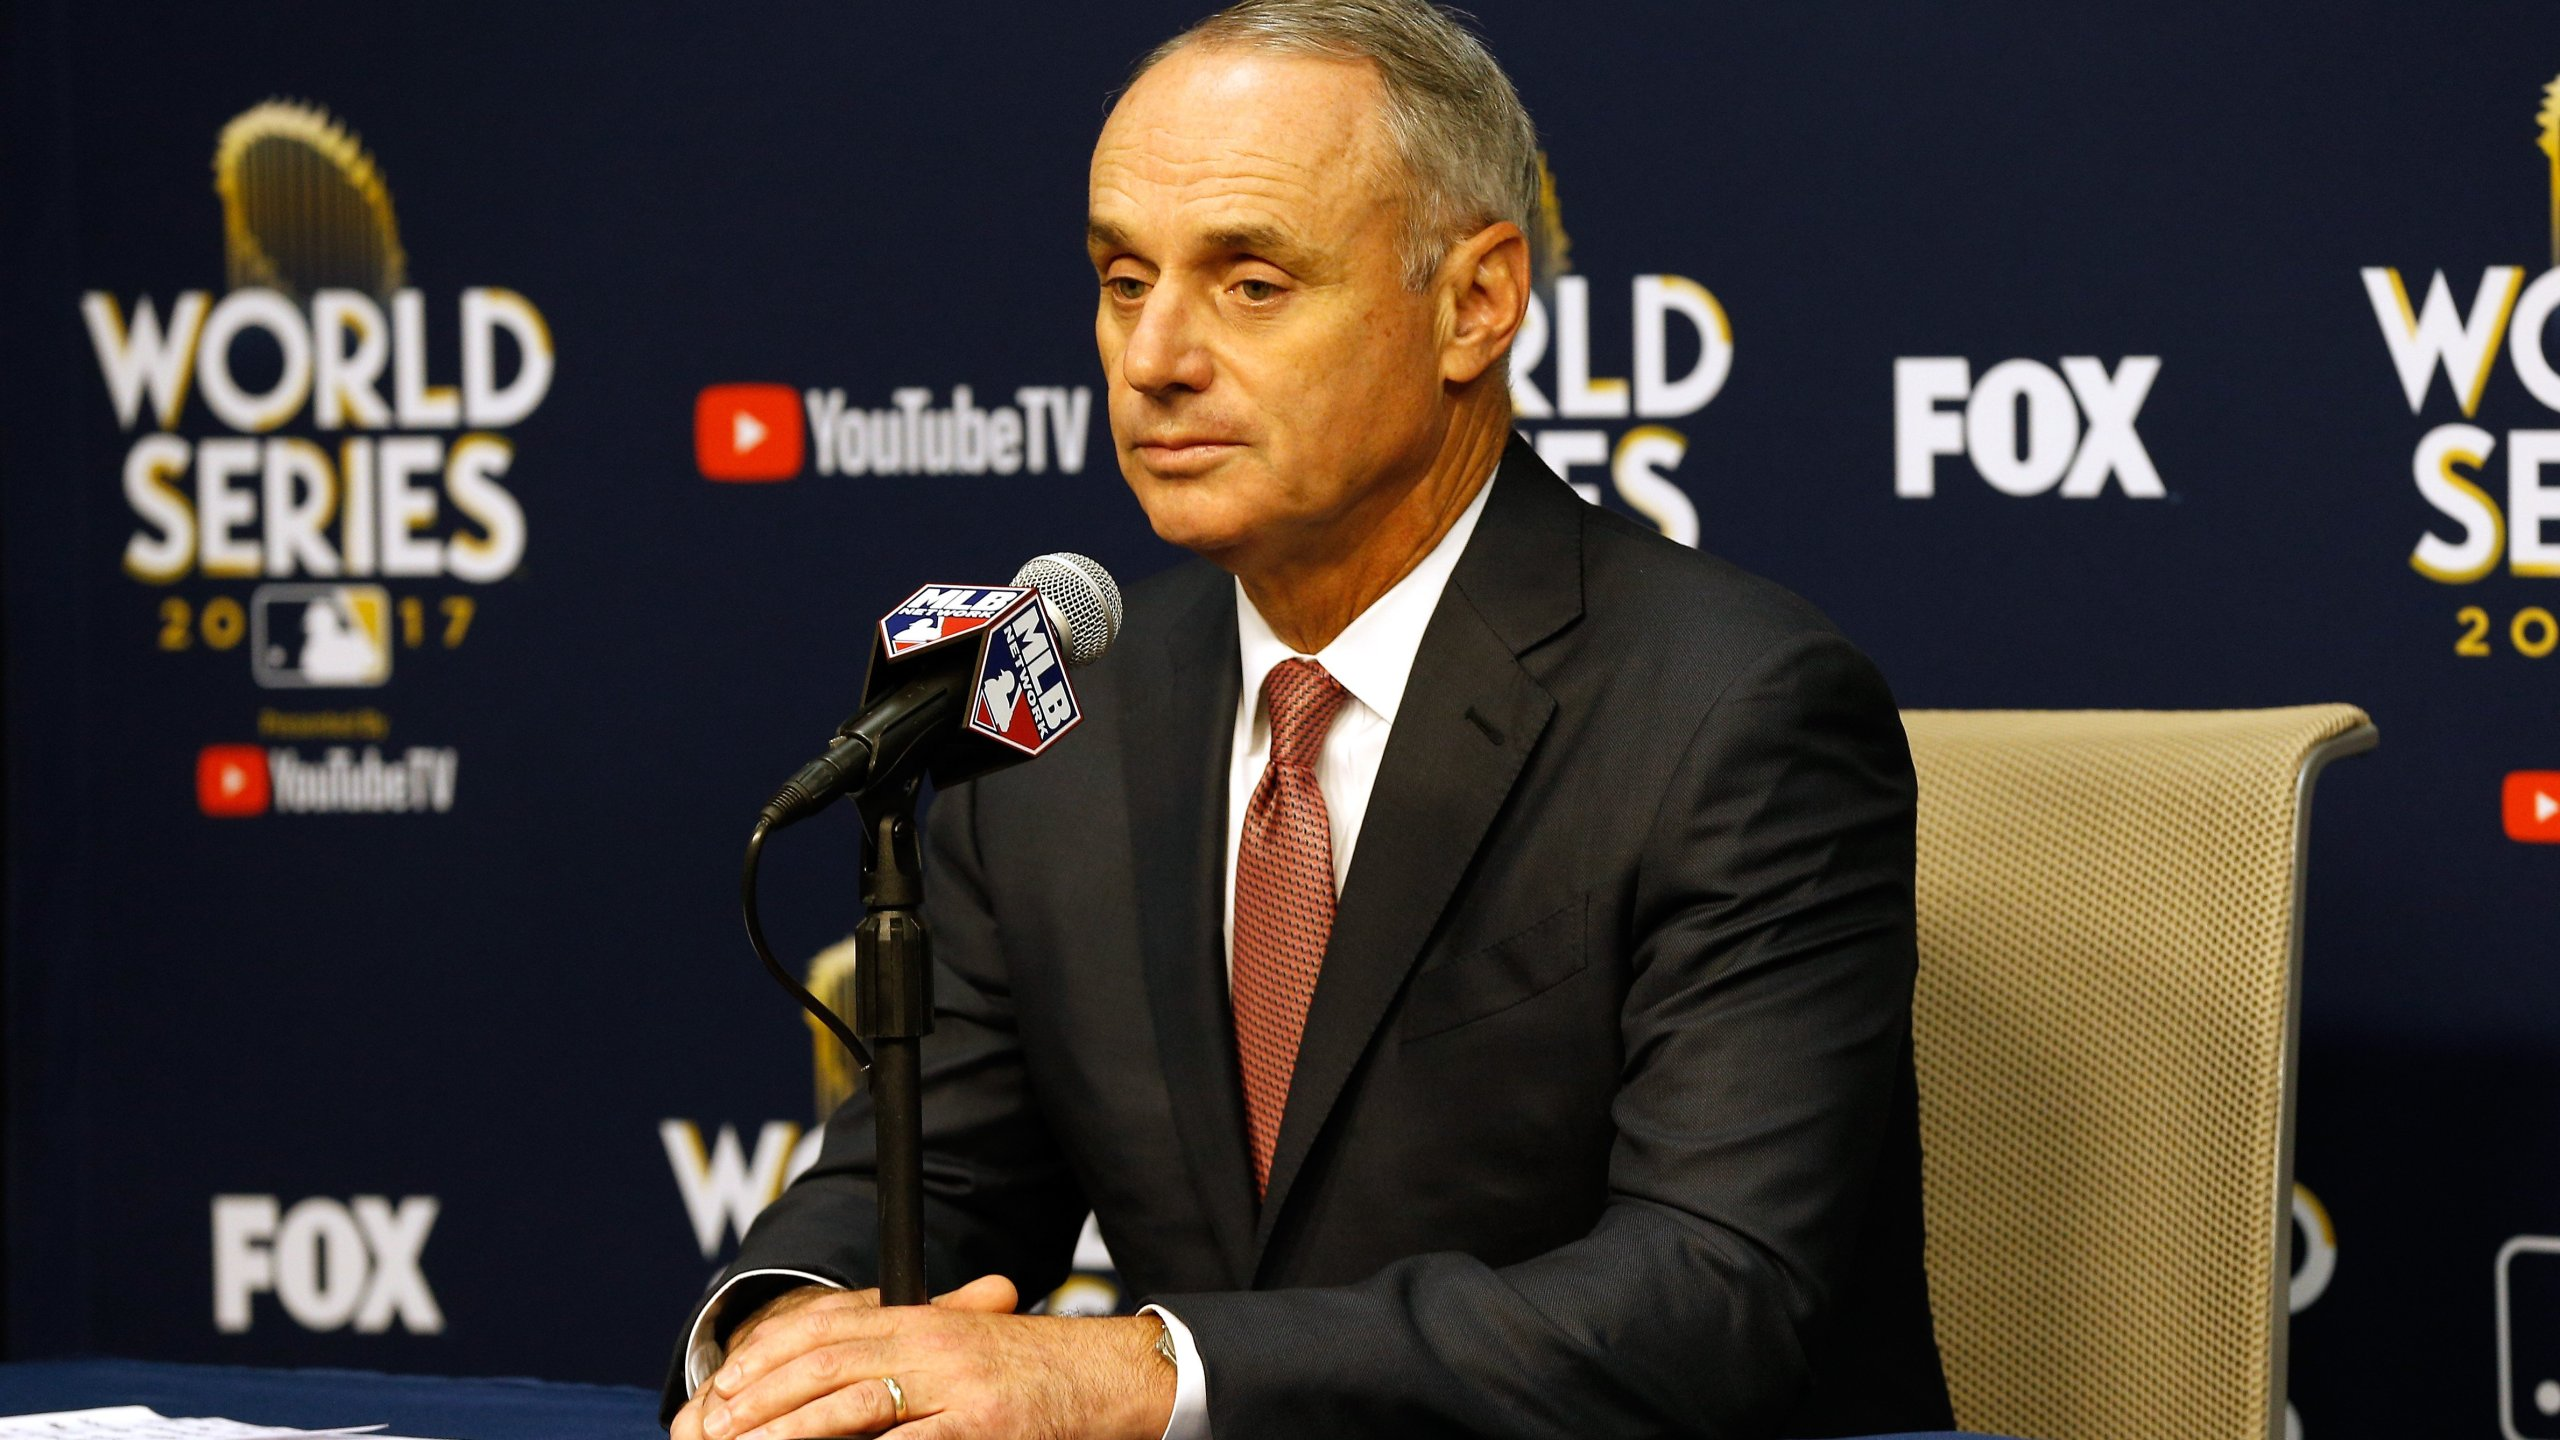 Major League Baseball Commissioner Robert D. Manfred Jr. speaks to the media during a press conference prior to game four of the 2017 World Series between the Houston Astros and the Los Angeles Dodgers at Minute Maid Park on October 28, 2017 in Houston. (Credit: Bob Levey/Getty Images)